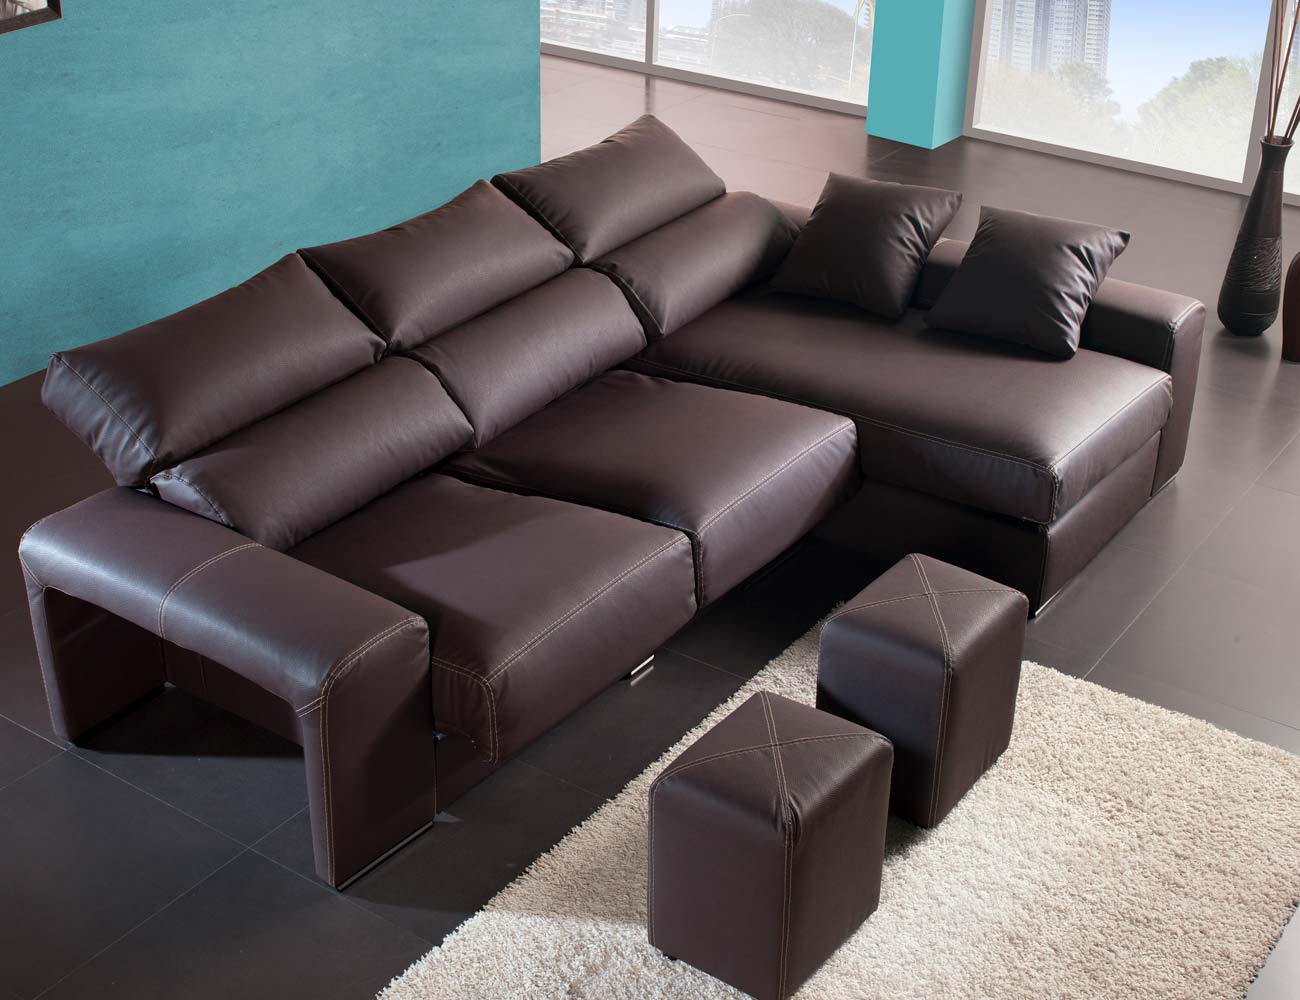 Sofa chaiselongue moderno polipiel chocolate poufs taburetes4